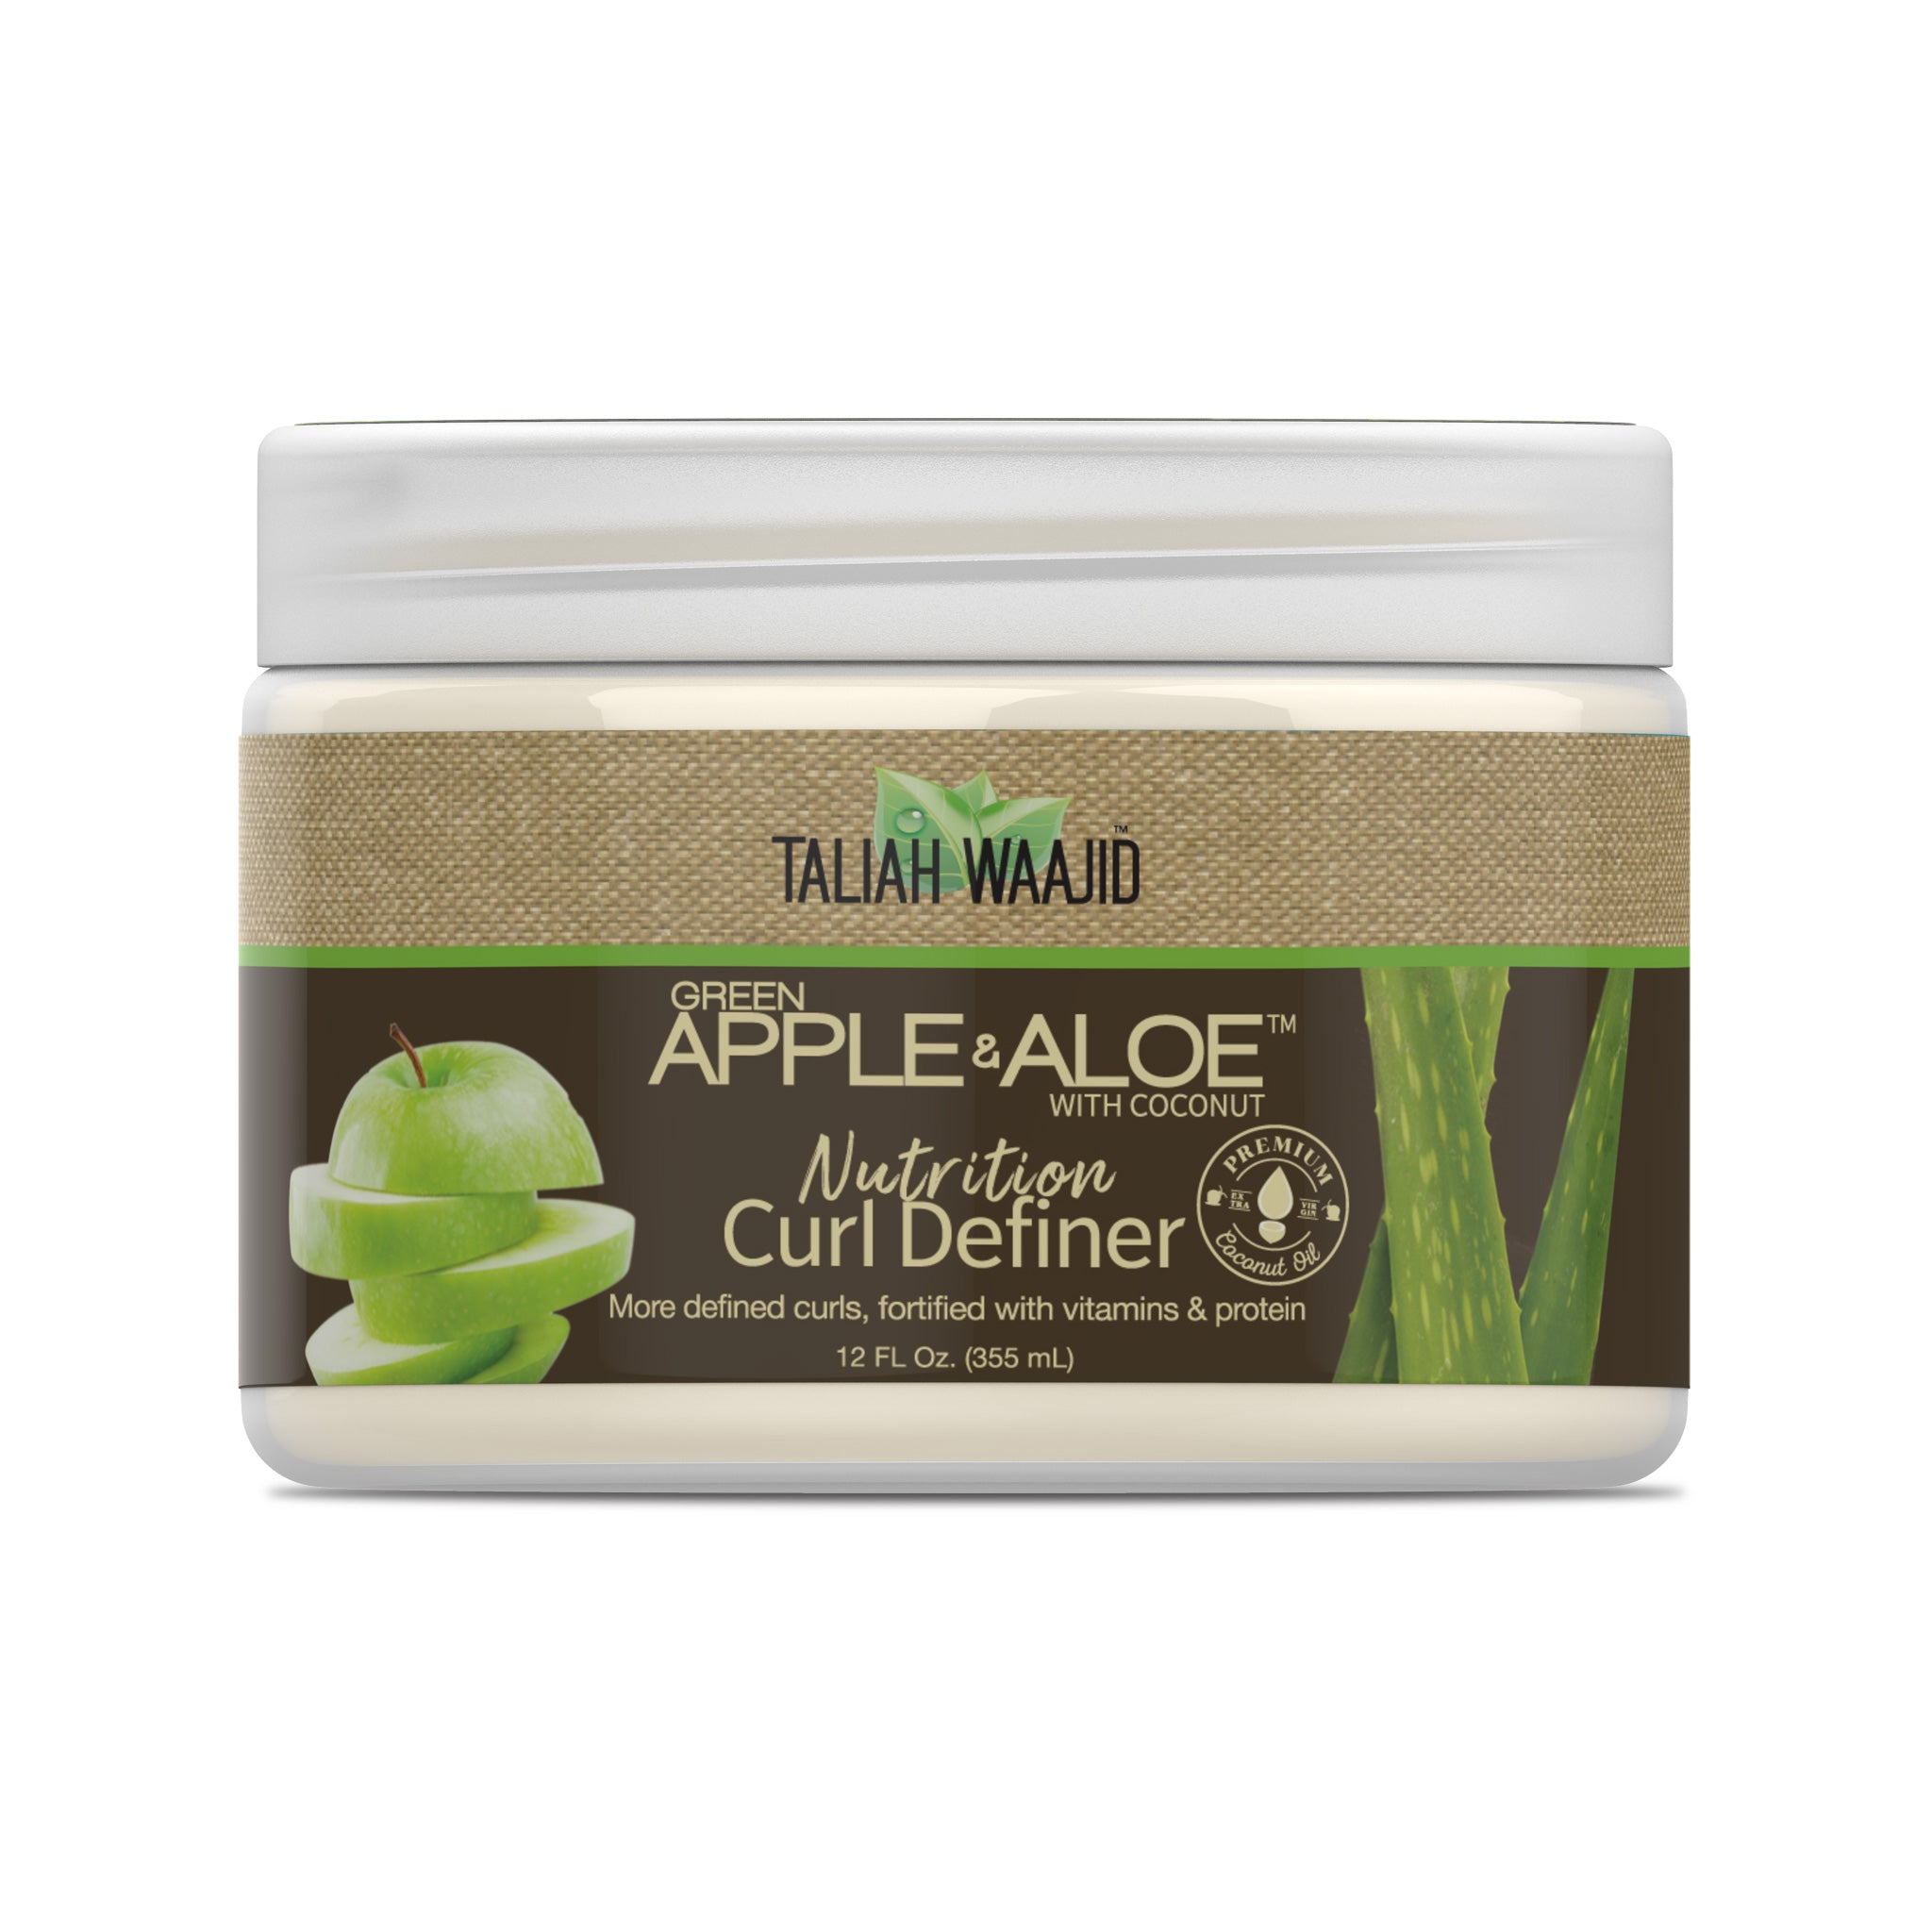 Green Apple & Aloe Nutrition Curl Definer 12oz